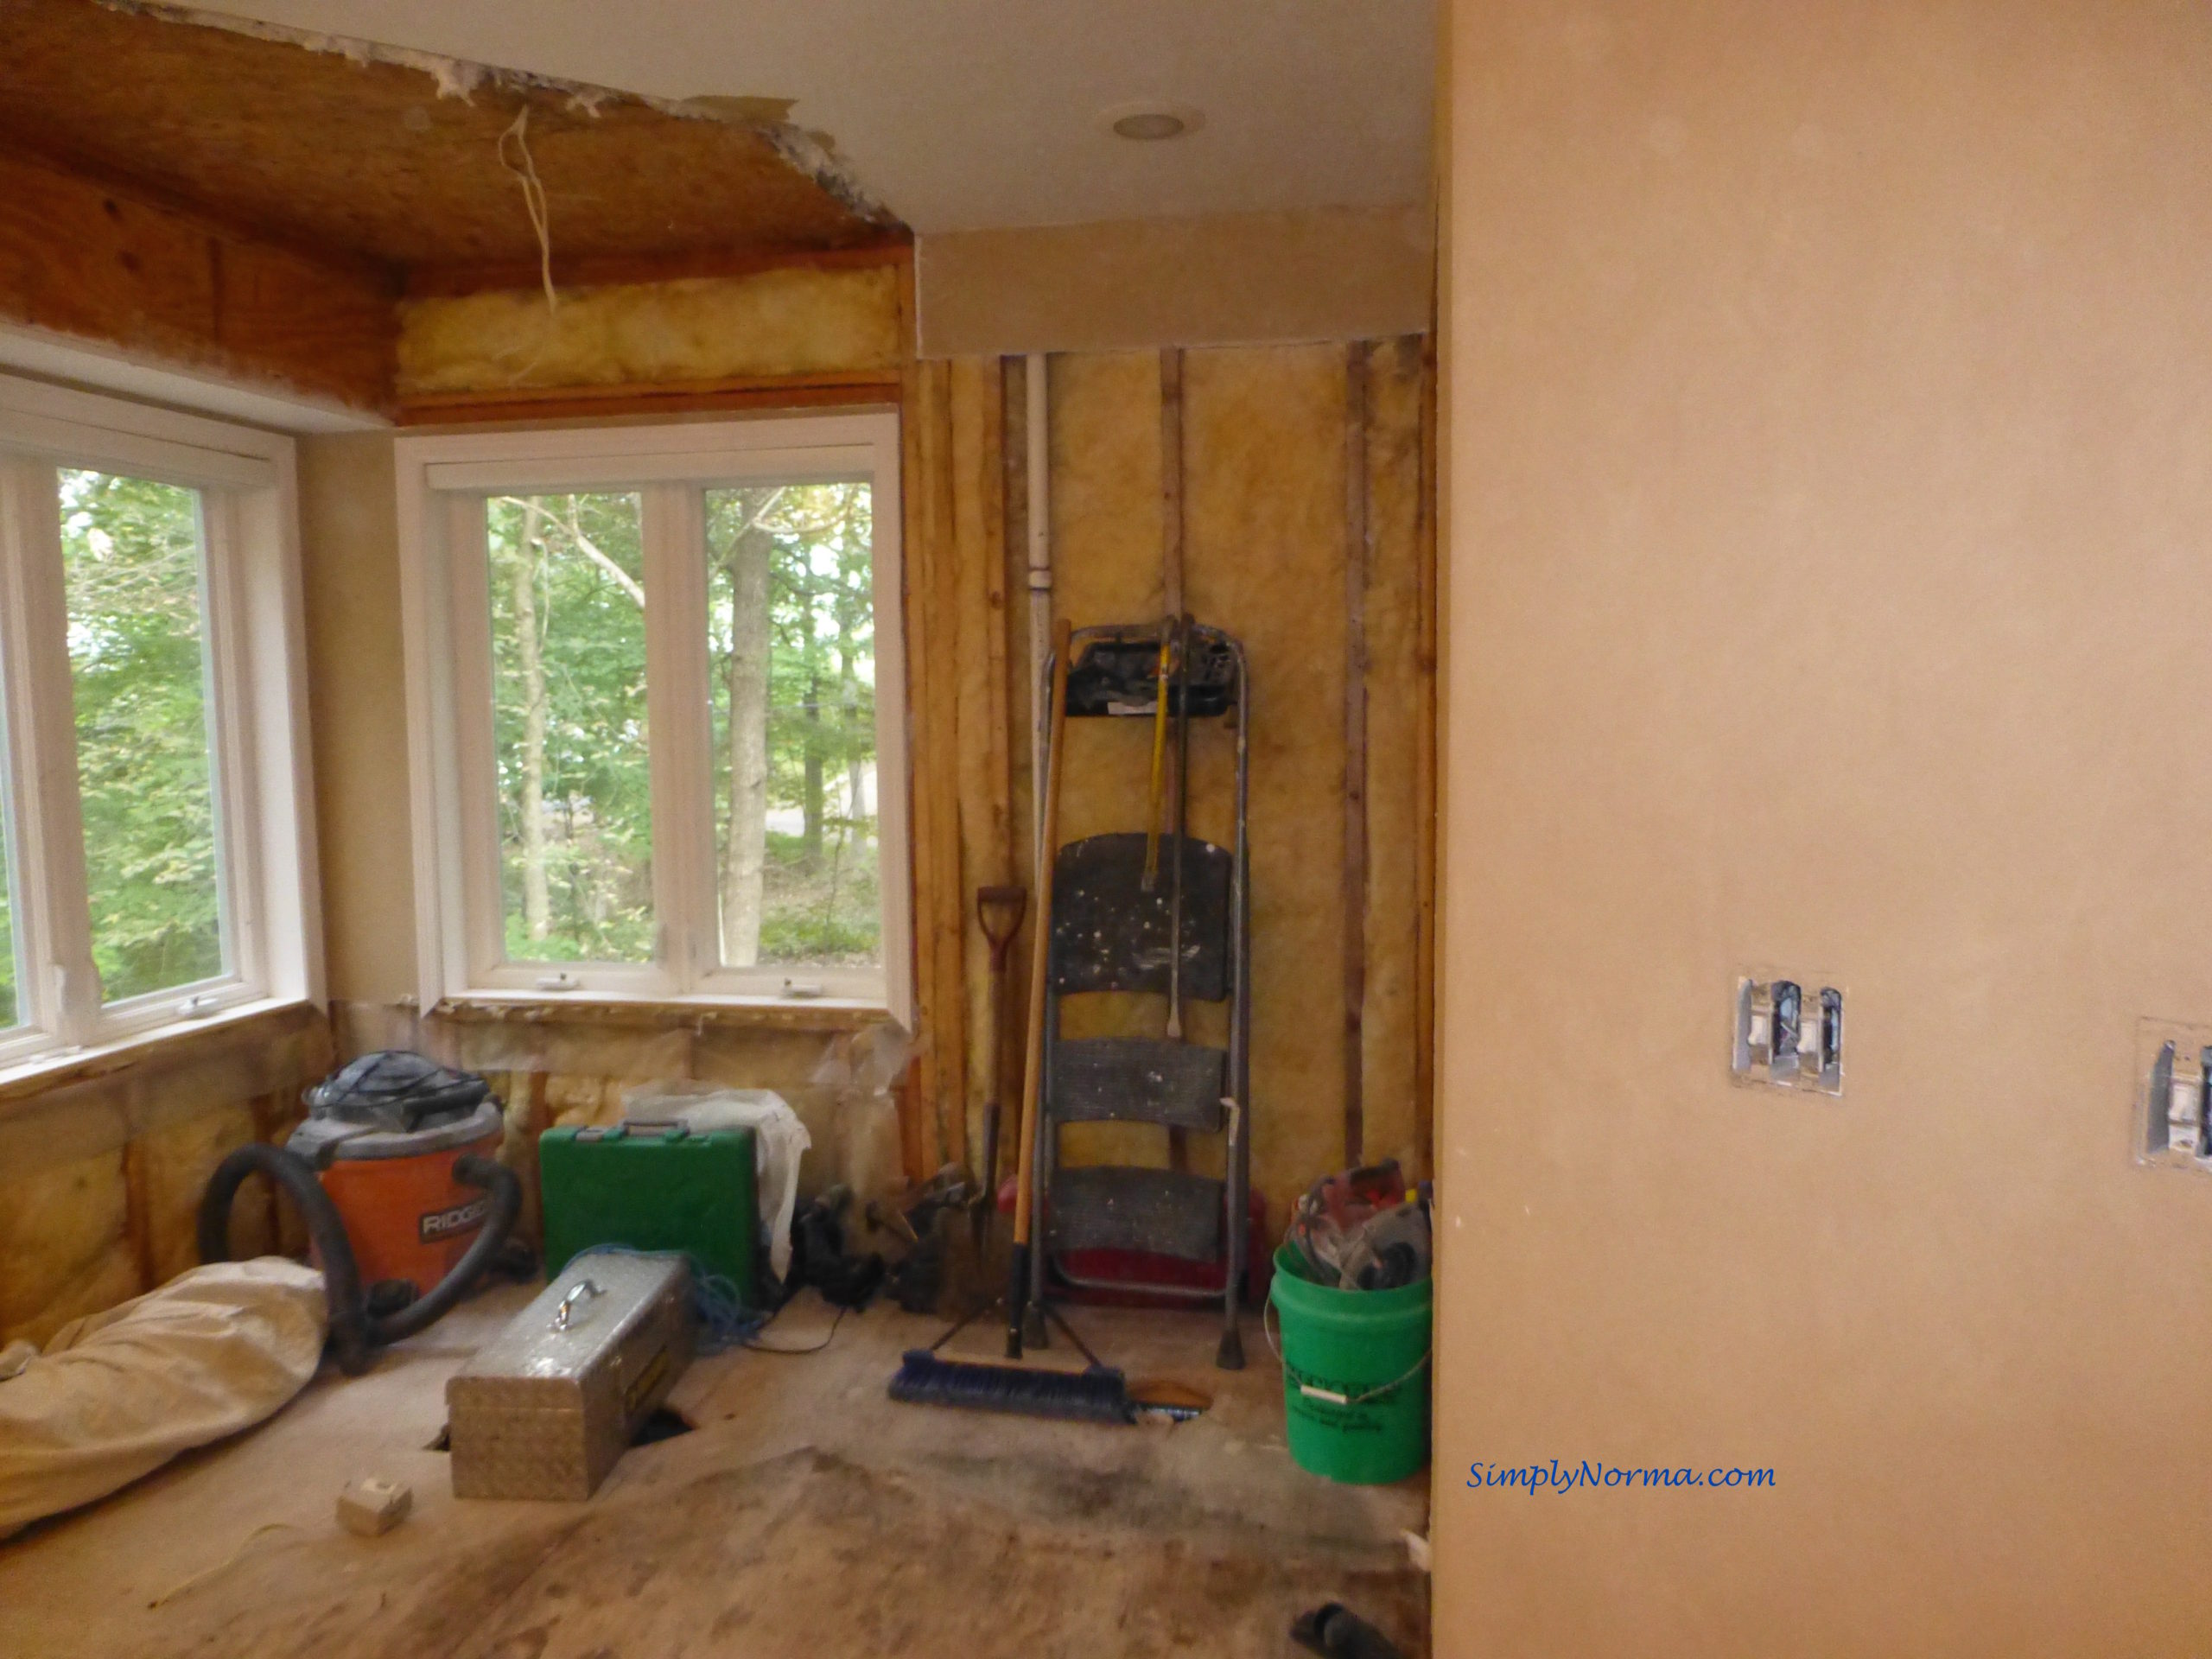 Remodeling The Master Bathroom Simply Norma